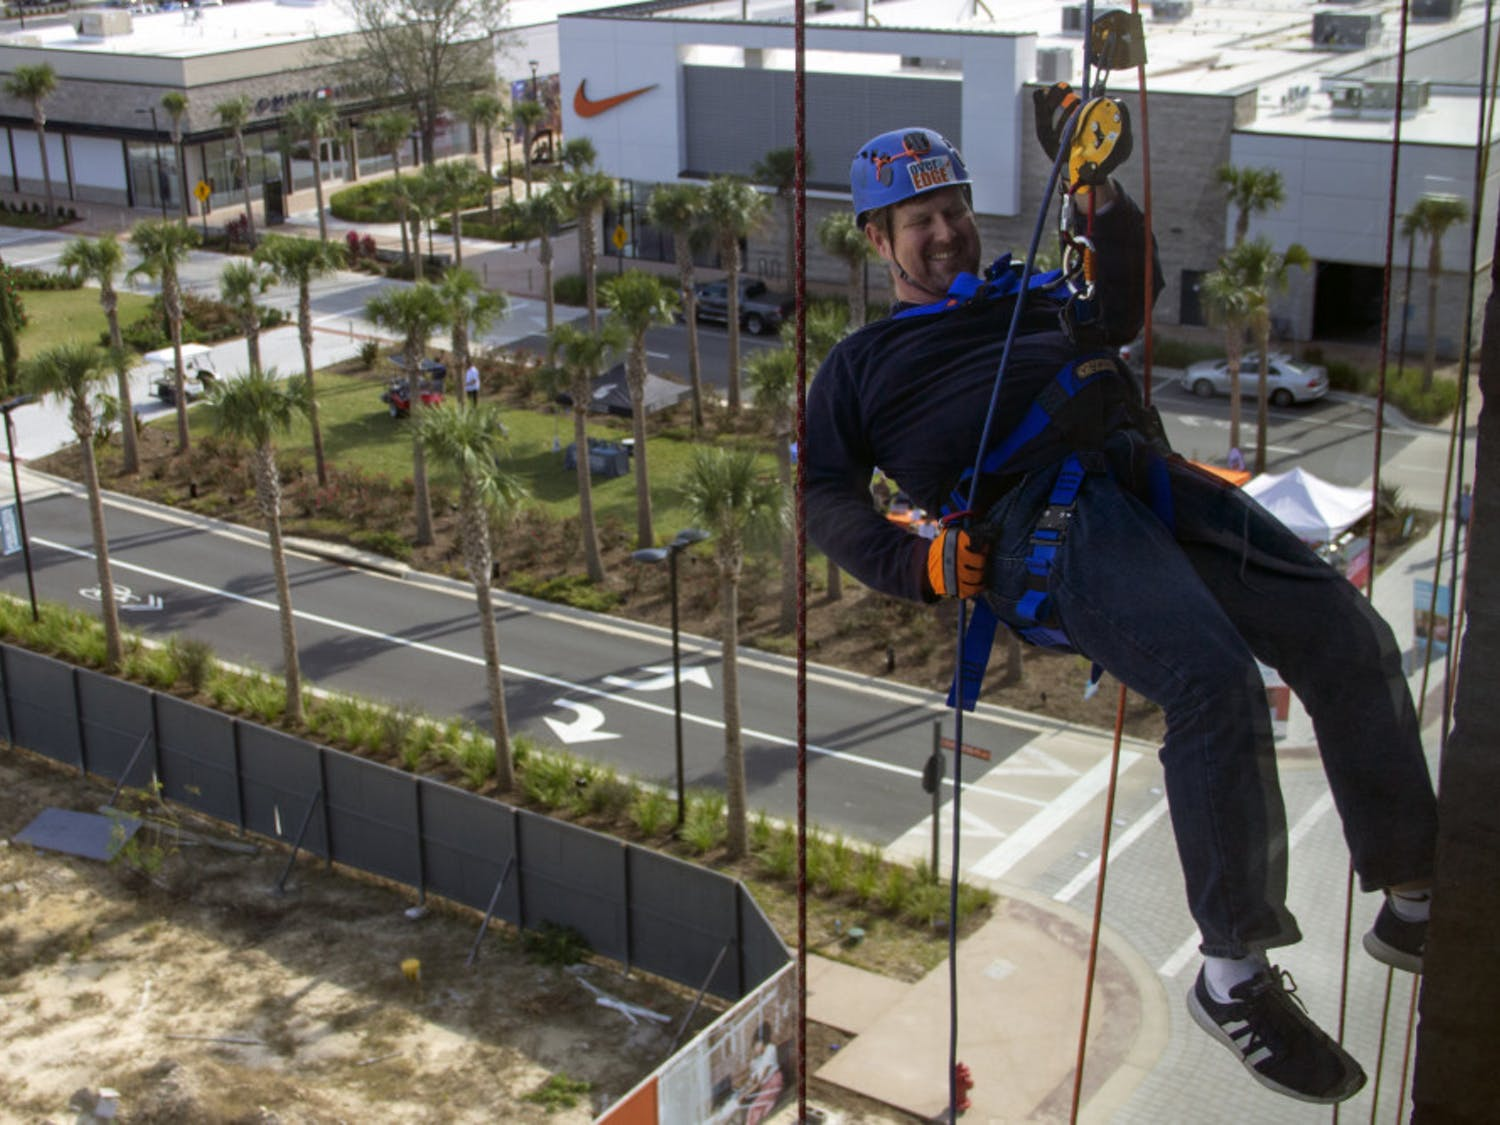 """Gainesville Mayor Lauren Poe descends down the side of the 5001 building in Celebration Pointe Friday during the Alachua Habitat for Humanity's Over the Edge fundraiser. The fundraiser raised at least $15,000 for the organization. """"You just lean back and enjoy the ride,"""" Poe said."""